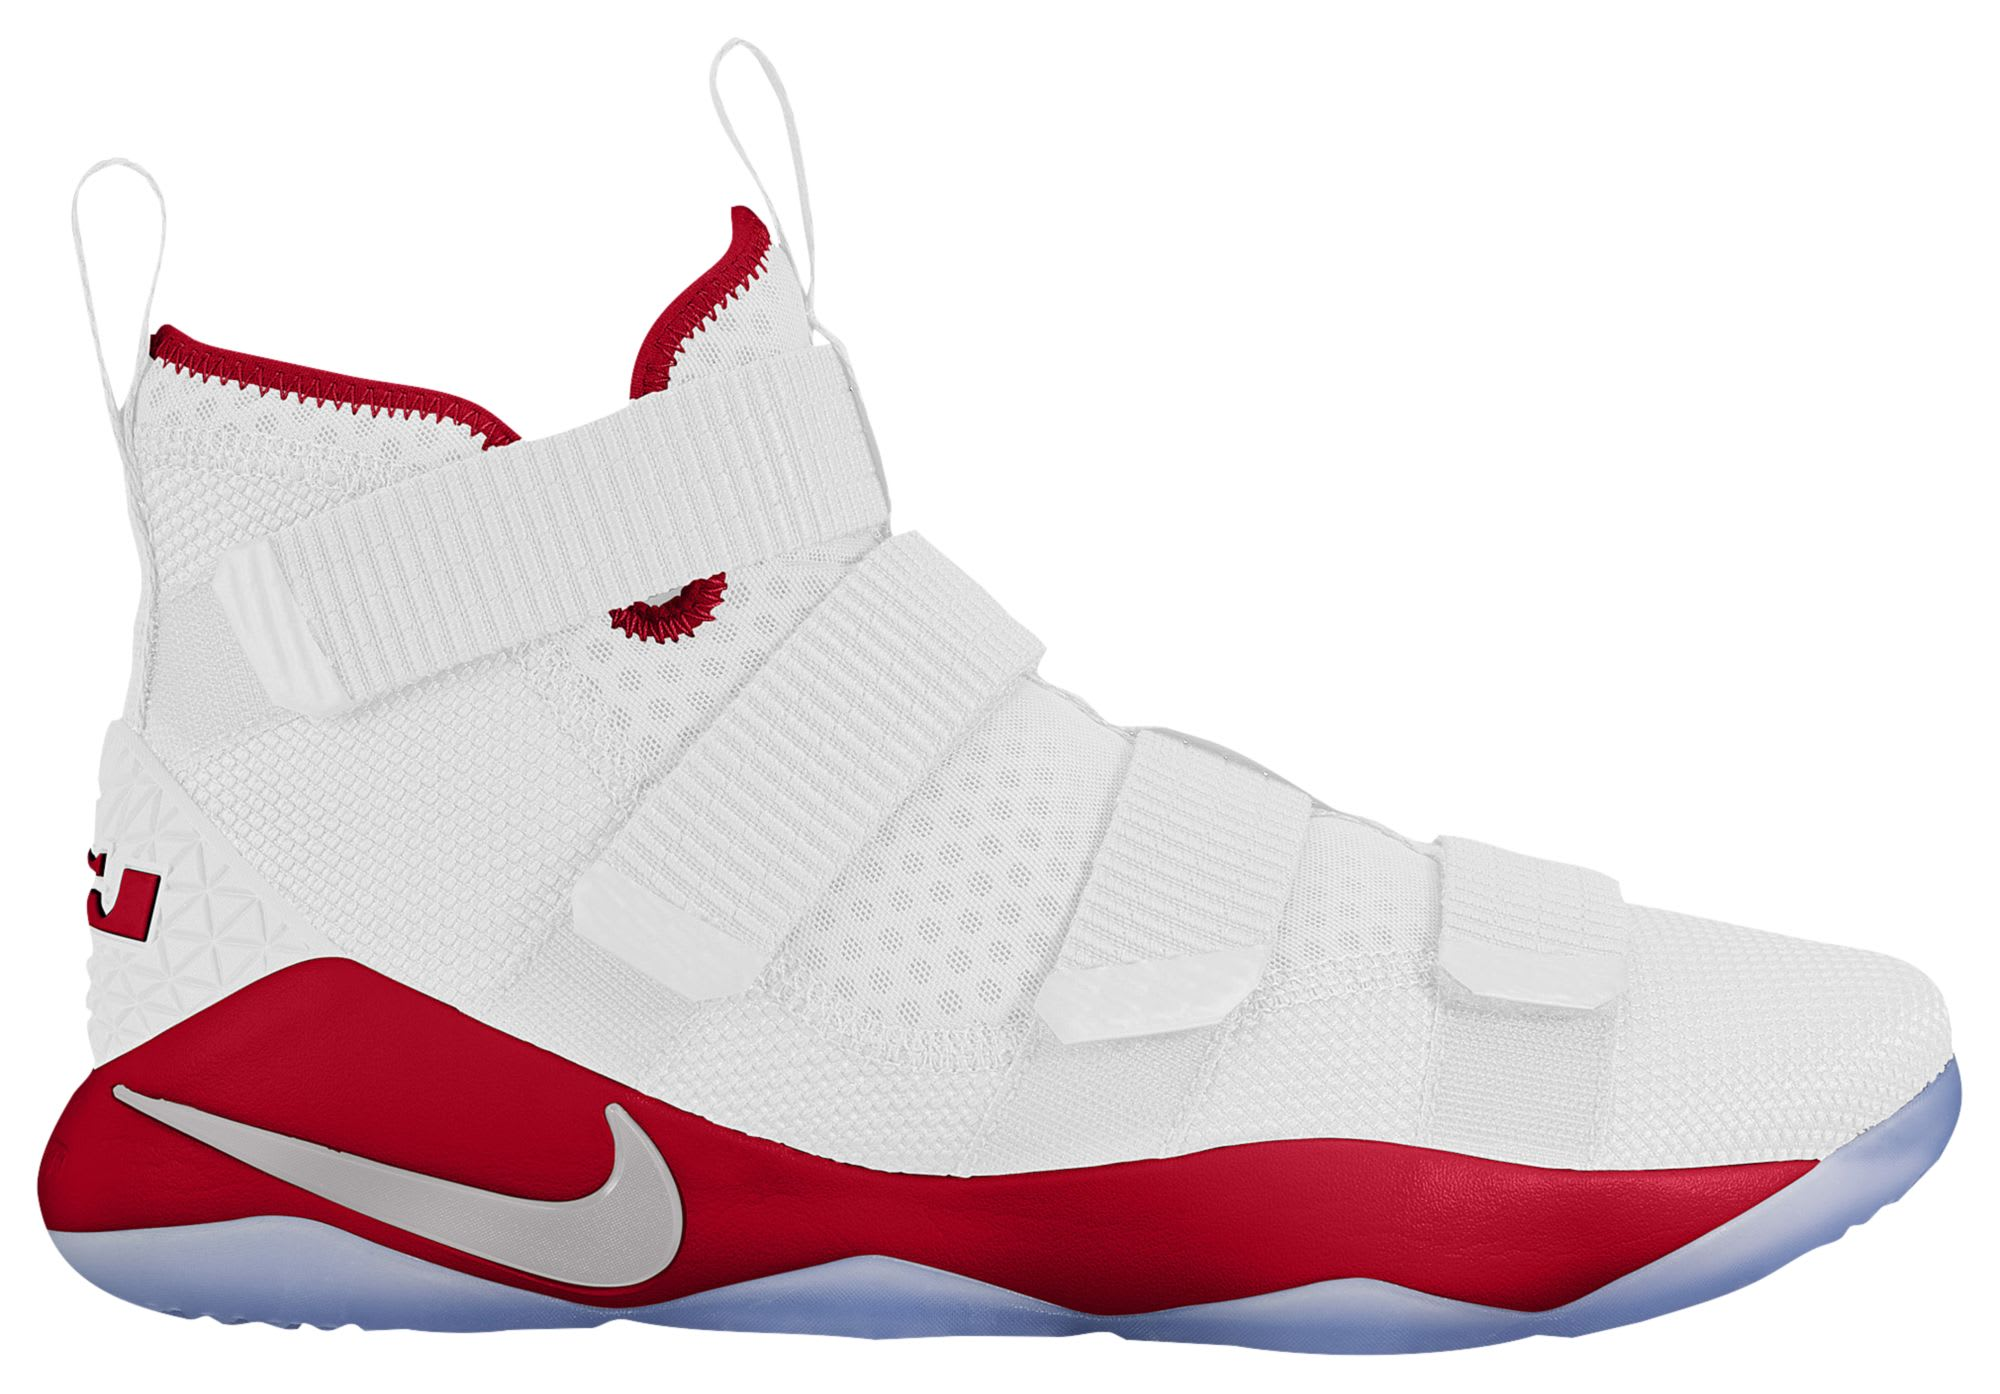 Nike LeBron Soldier 11 TB White Red